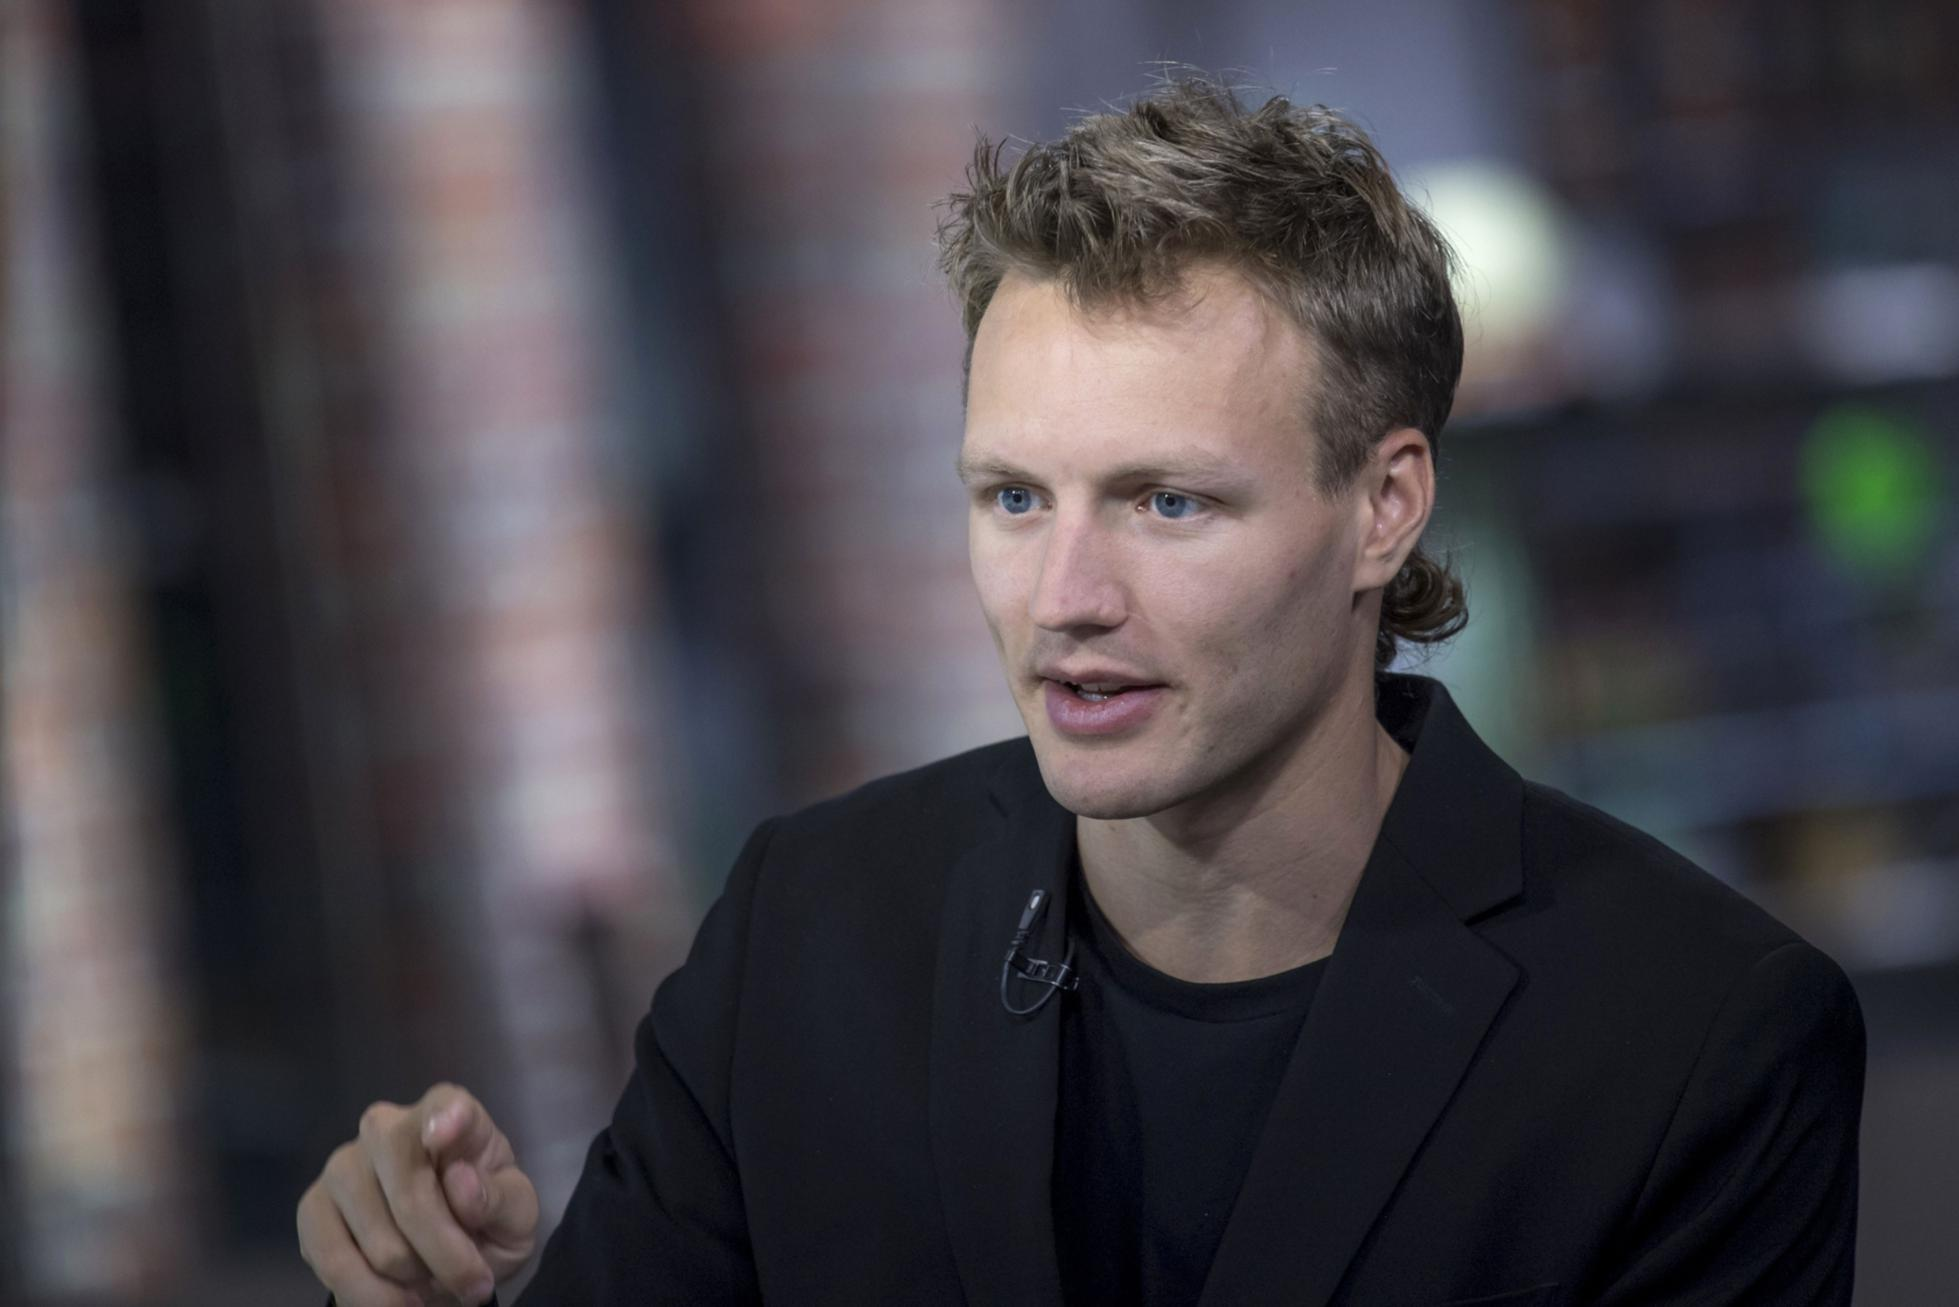 Polychain Capital Founder And Chief Executive Officer Olaf Carlson-Wee Interview